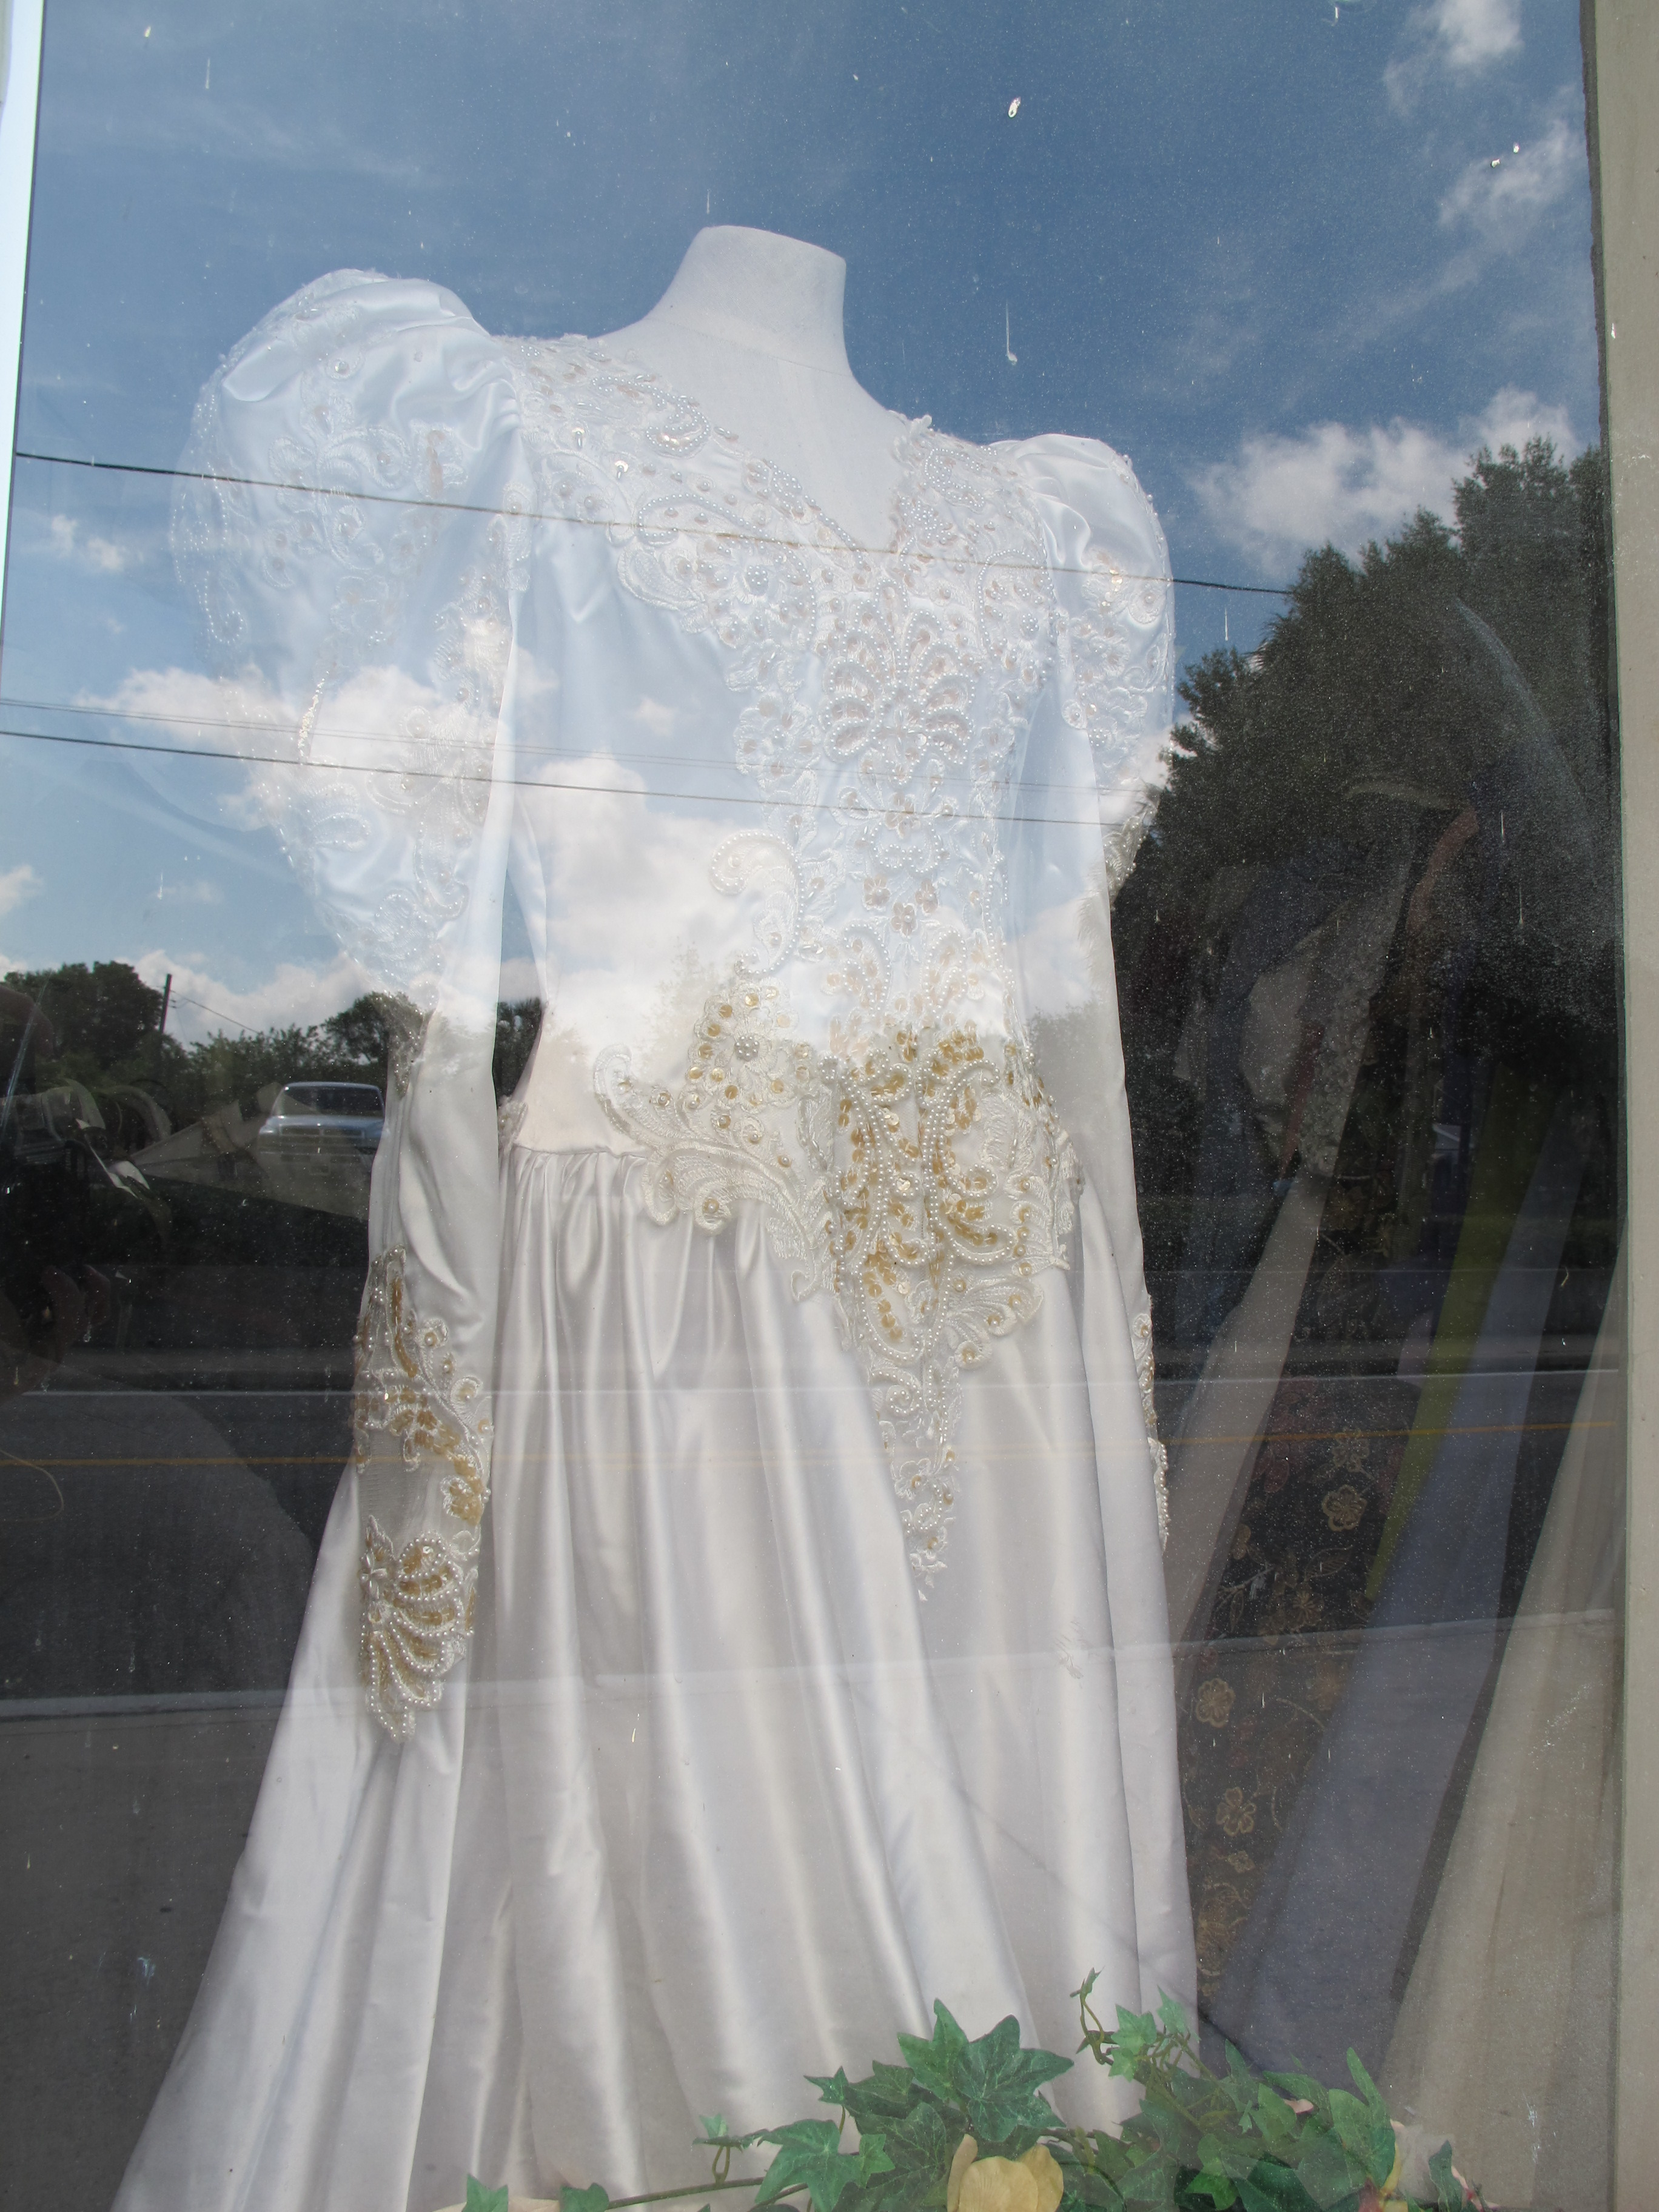 Hacked up wedding dress amber love johnson for Wedding dress thrift shop